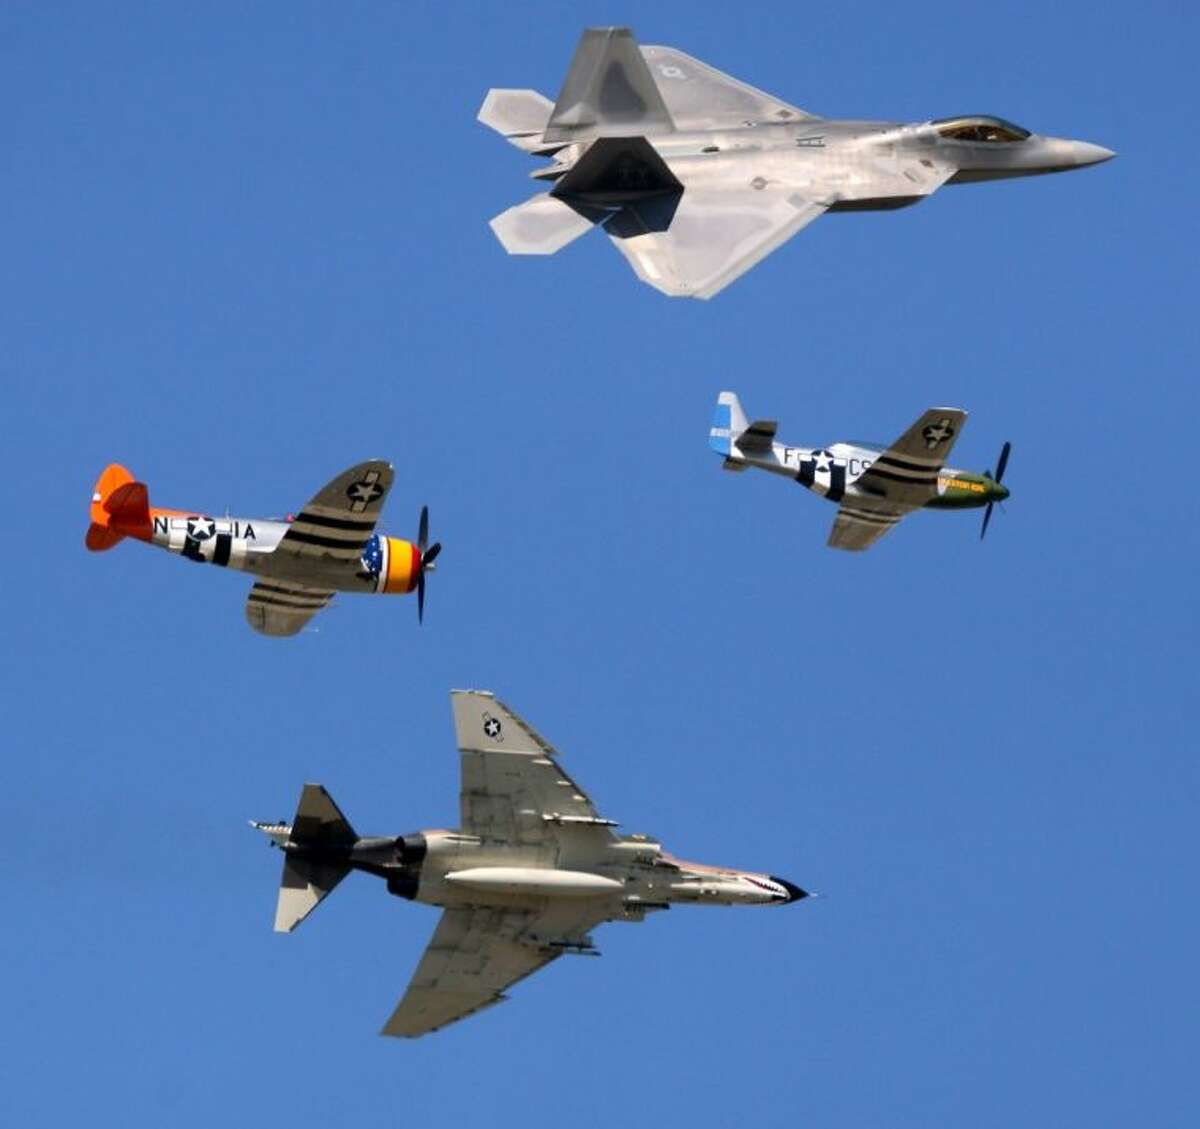 """Leading the Heritage Flight from the 2012 Wings over Houston Airshow is """"Galveston Gal"""", a P-51 from the Lone Star Flight Museum. The P-51 crashed Wednesday October 23, 2013 near Galveston Texas in West Galveston Bay."""